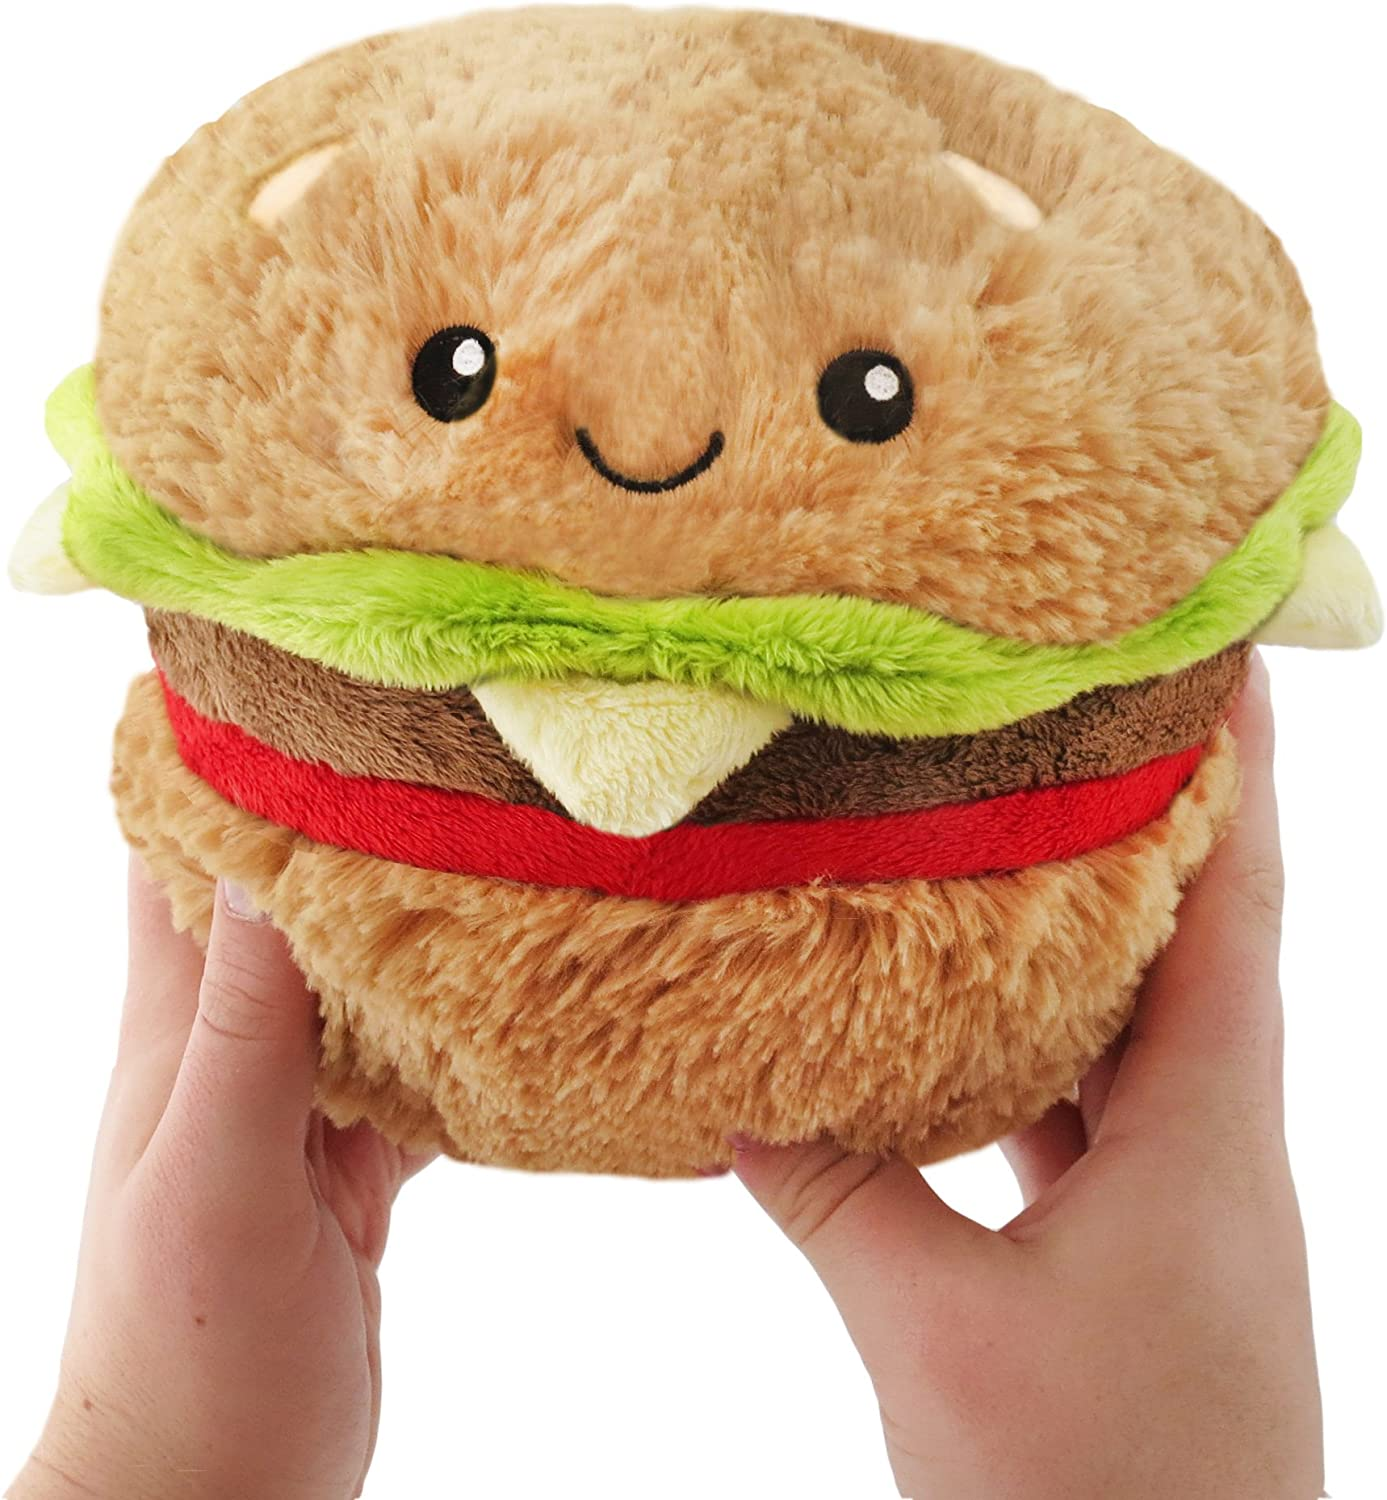 Squishable / Mini Hamburger Plush - 7